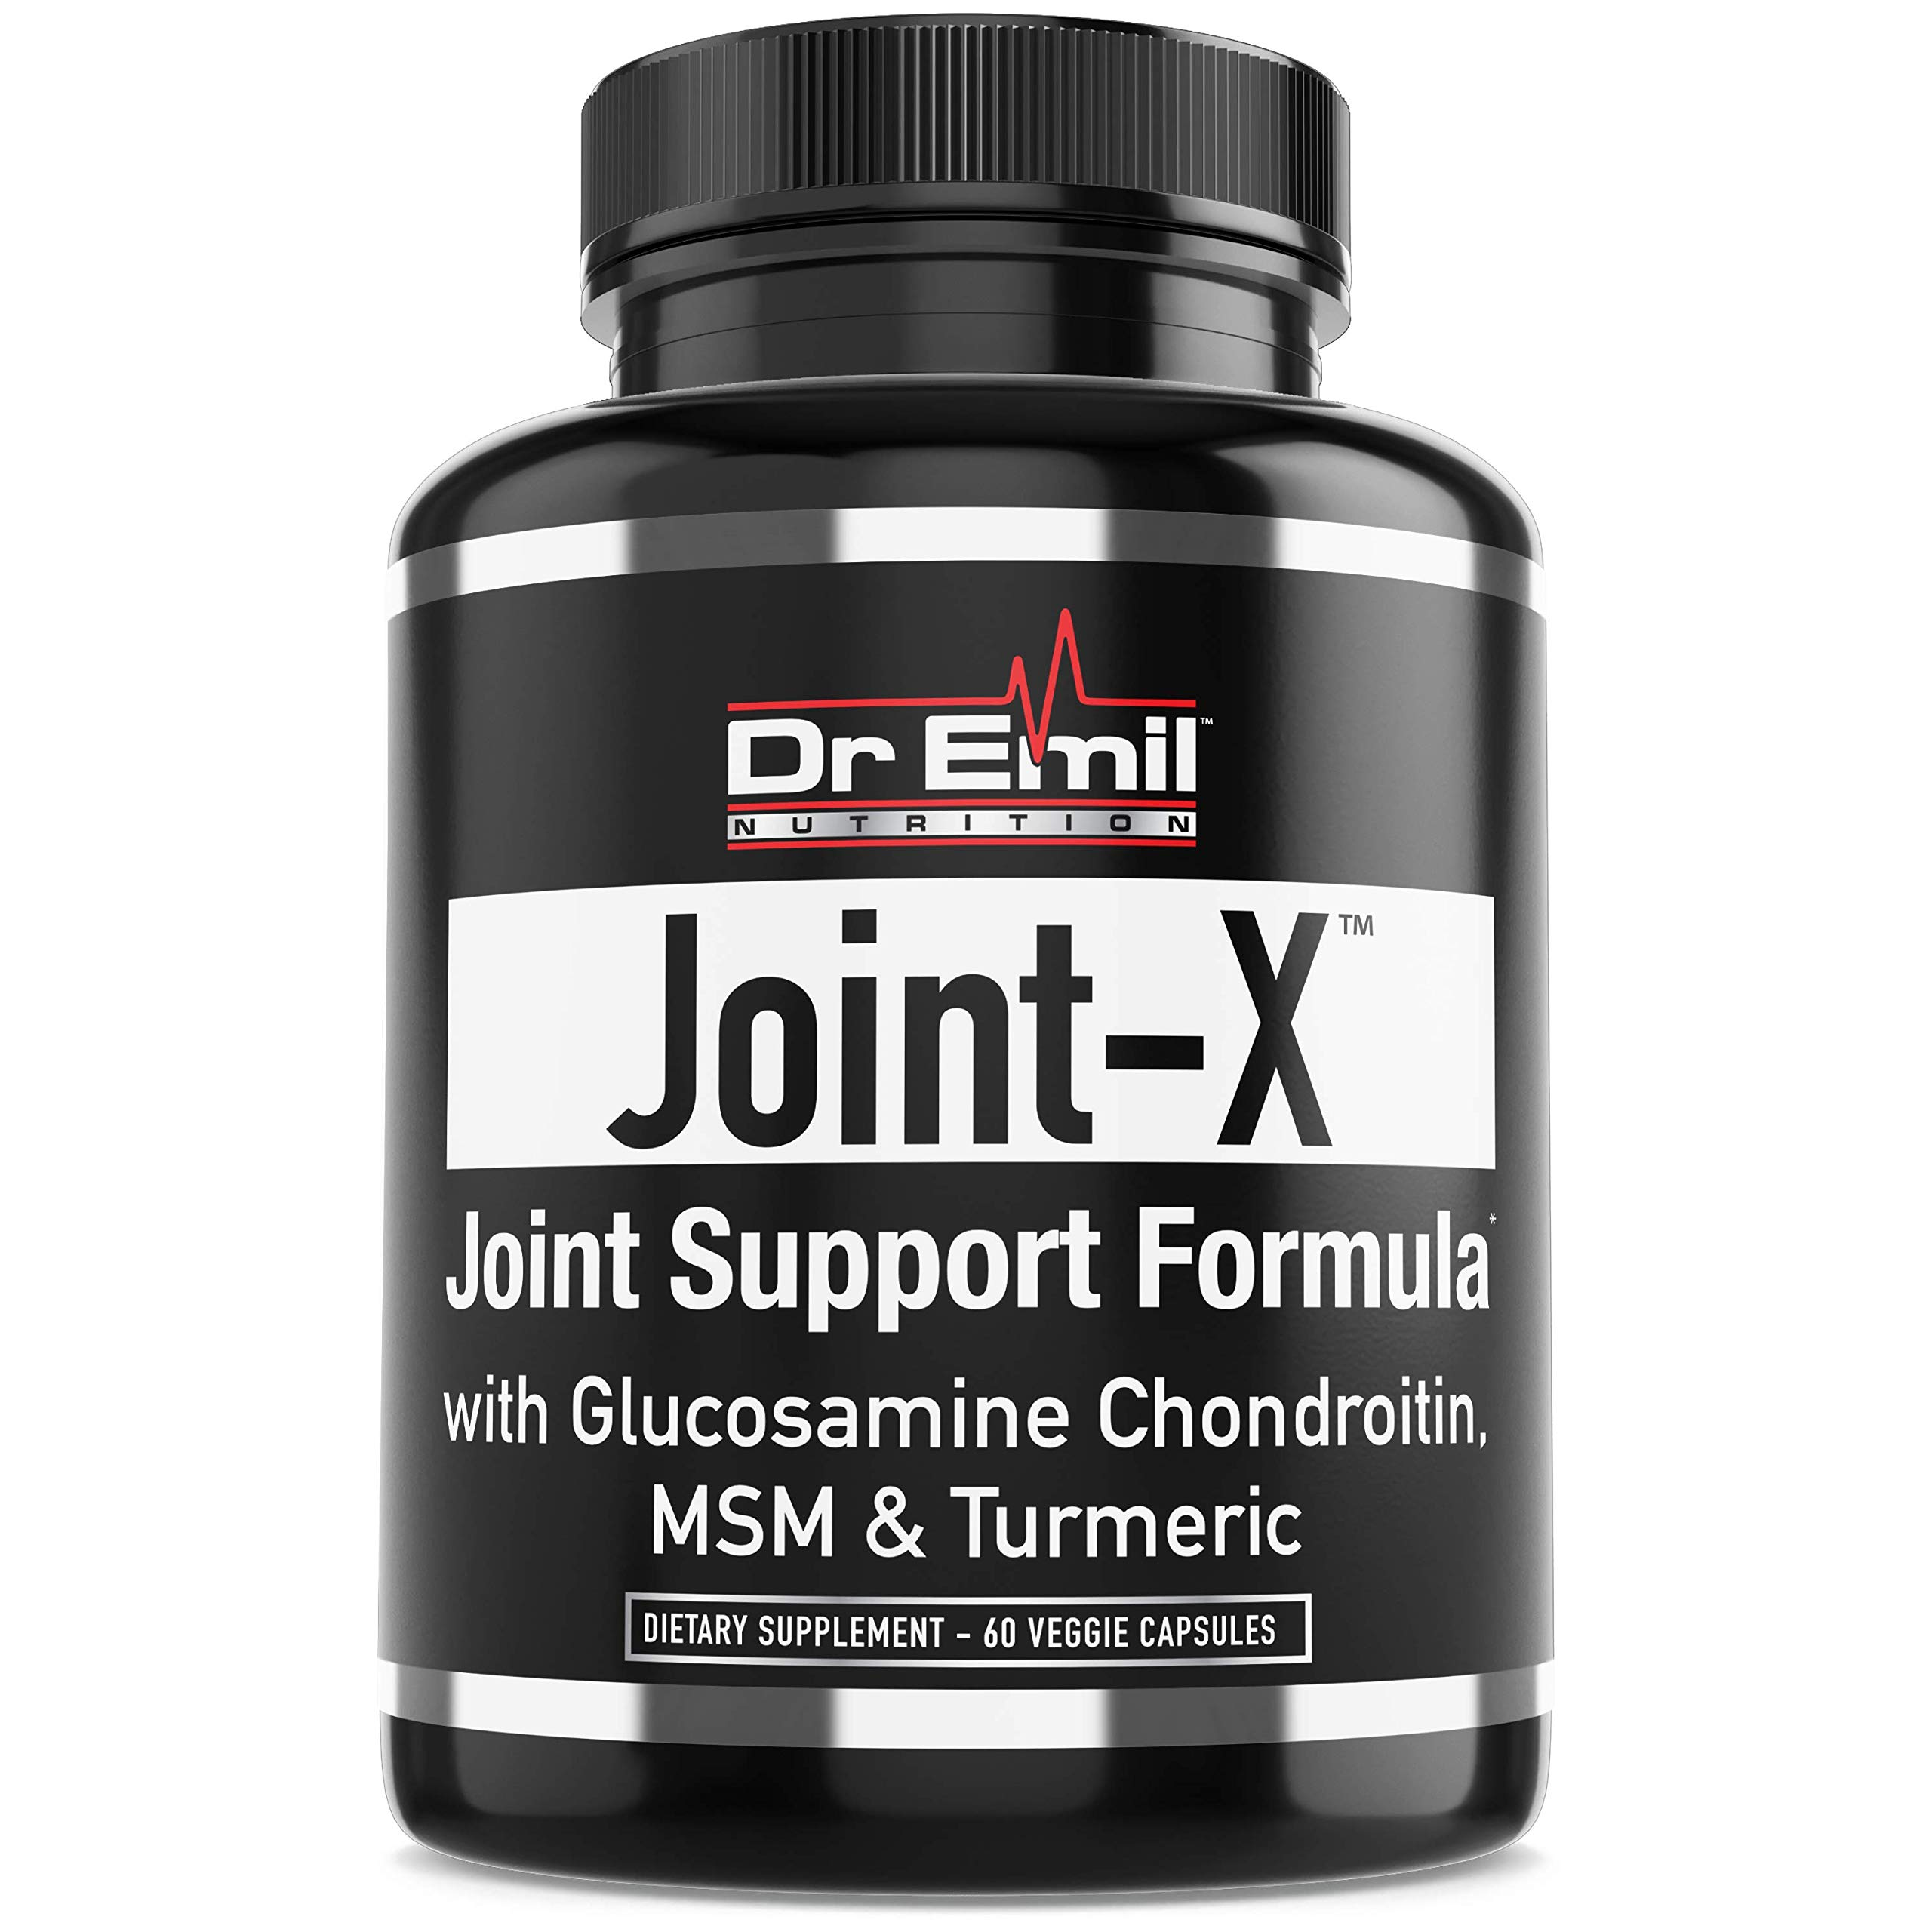 Dr. Emil's Joint Support Formula - Glucosamine Chondroitin, Turmeric & MSM - Doctor Formulated Joint Supplement for Mobility & Pain Relief - for Men & Women (60 Veggie Capsules)